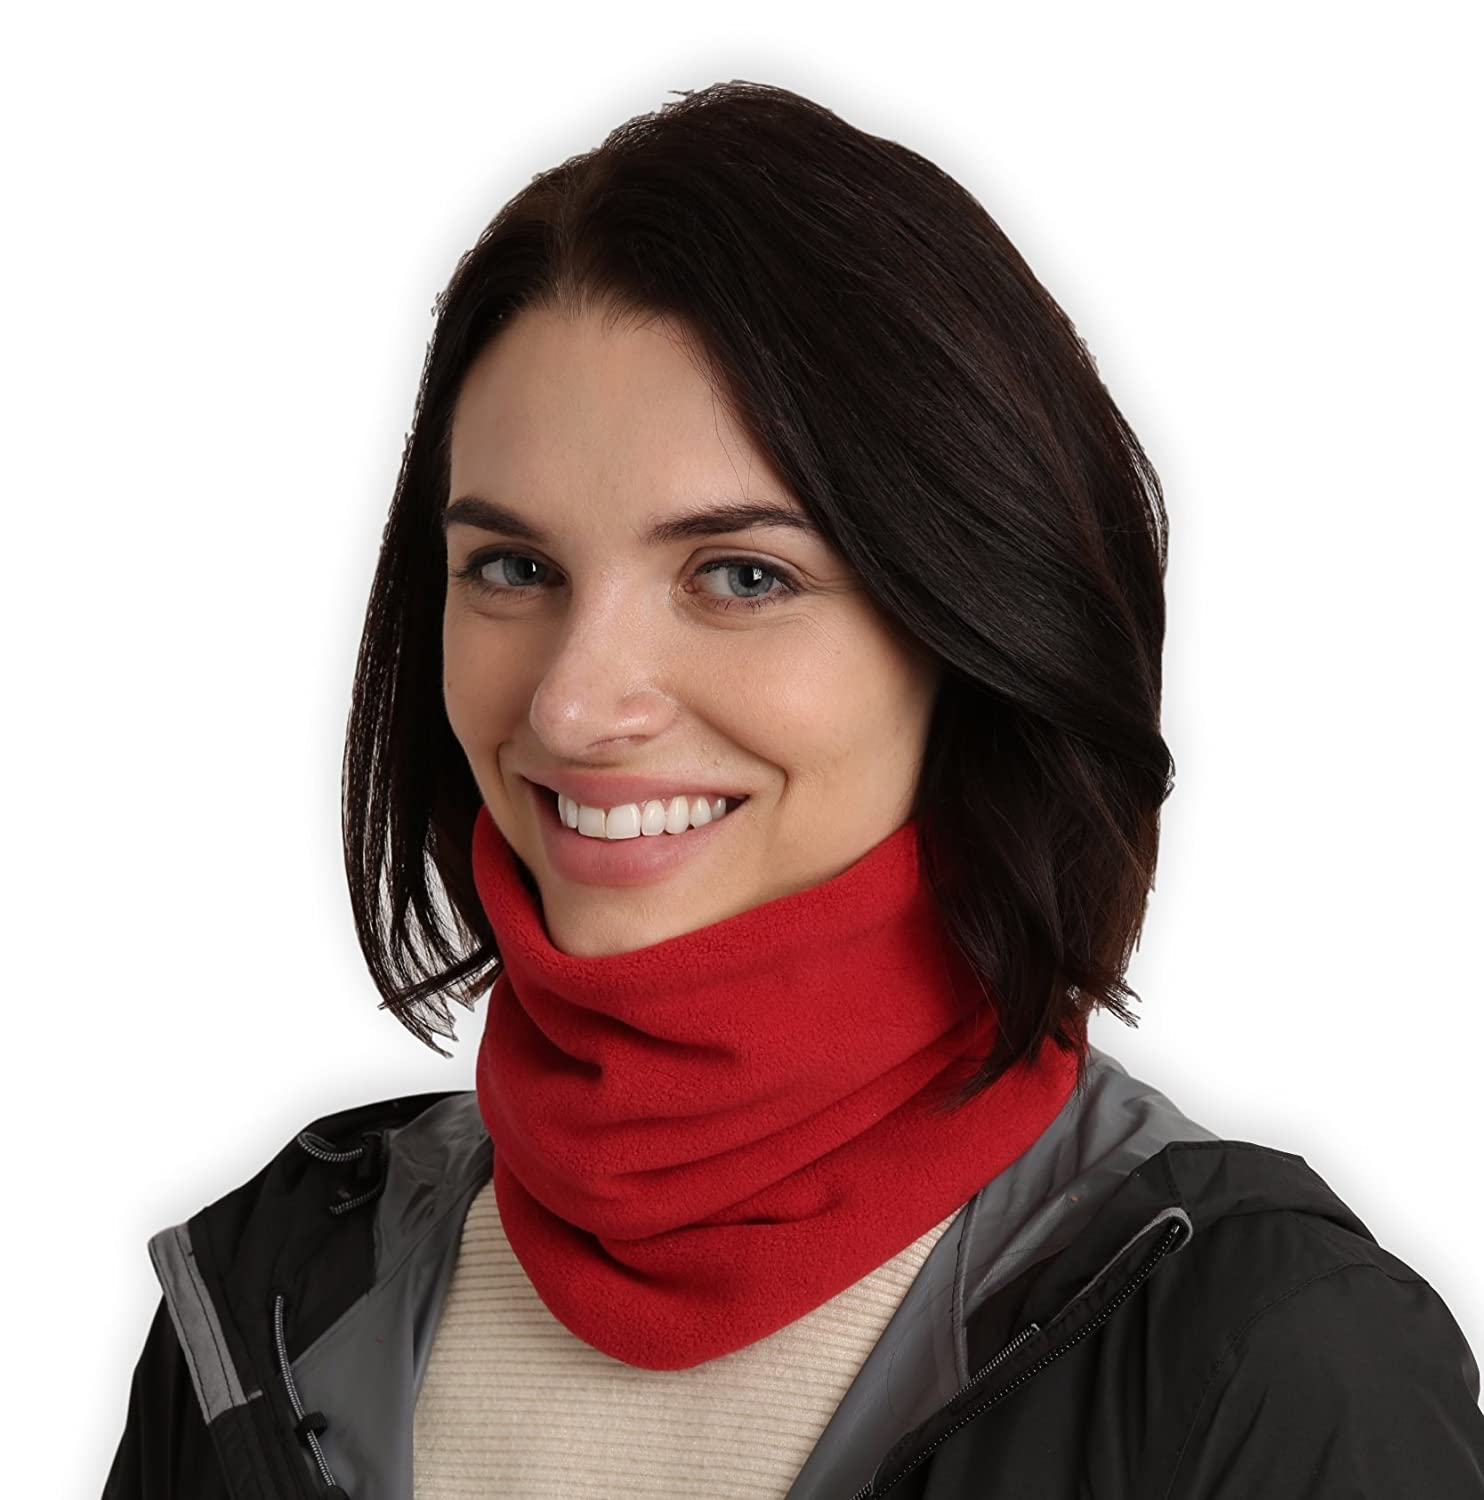 Fleece Neck Warmer - Neck Gaiter Tube, Ear Warmer Headband & Face Mask. Ultimate Thermal Retention, Versatility & Style. Constructed with Super Soft Fleece & Microfiber Tough Headwear